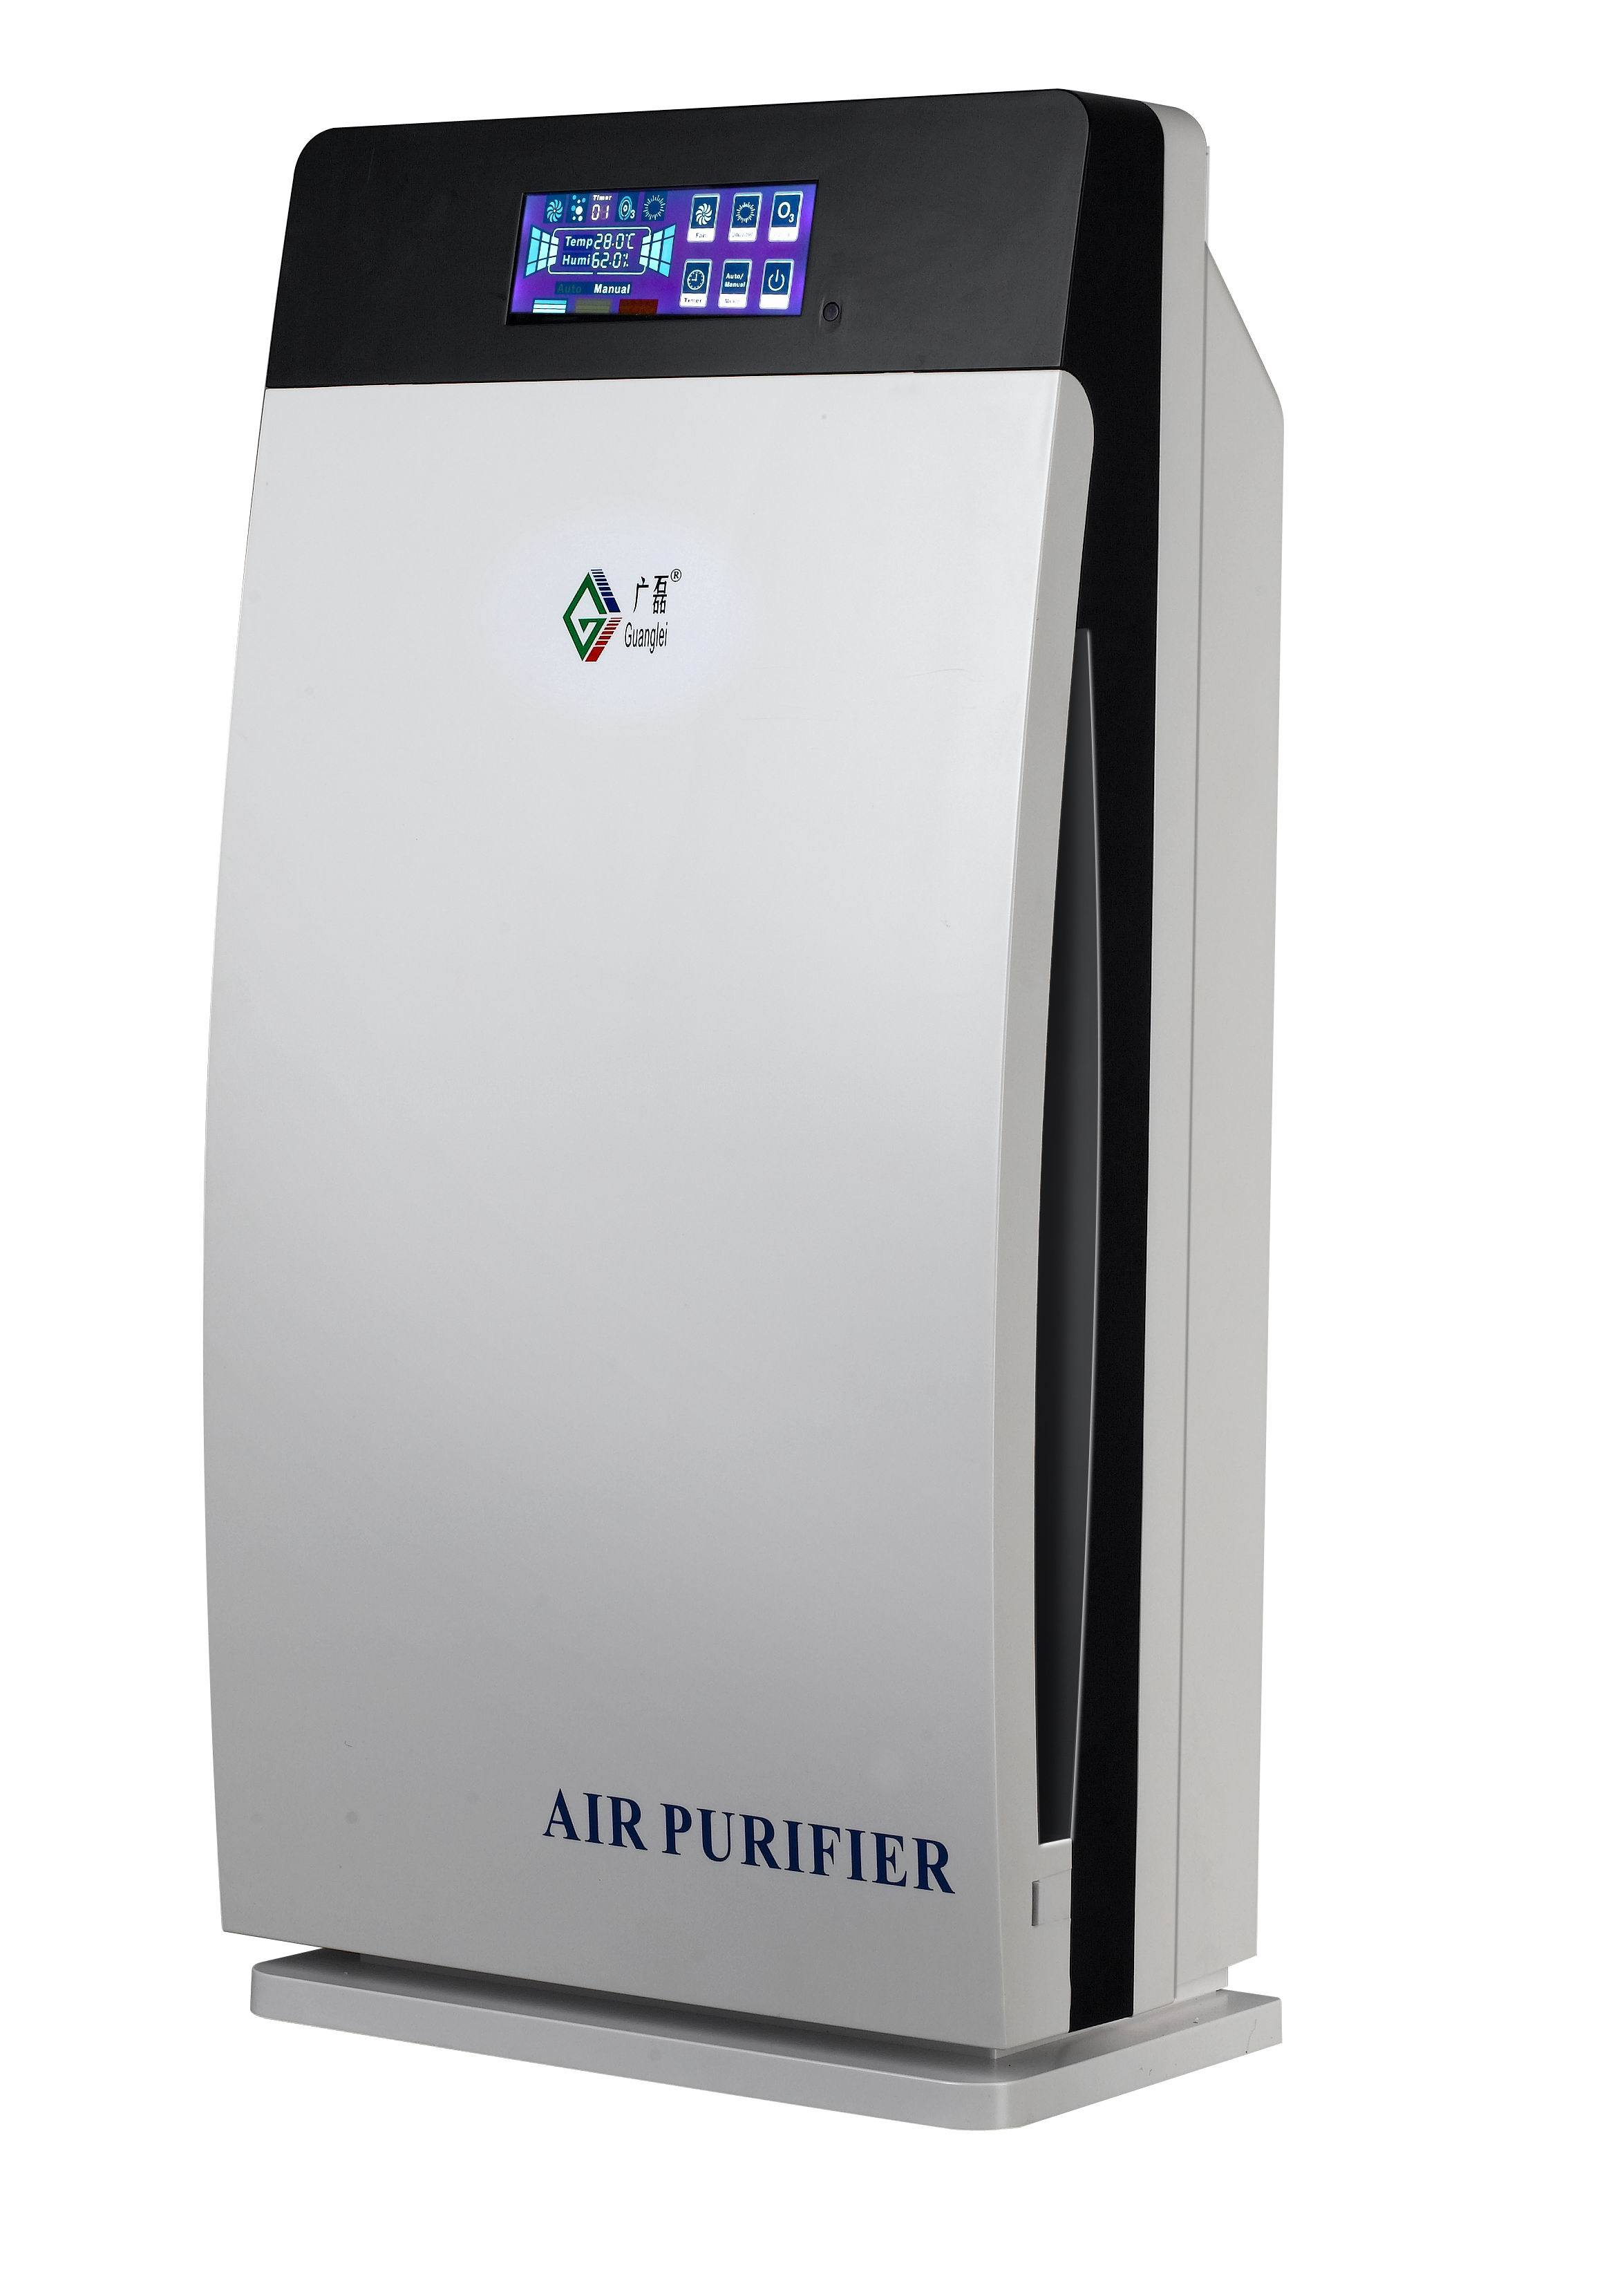 Image Result For Air Purifier And Humidifier